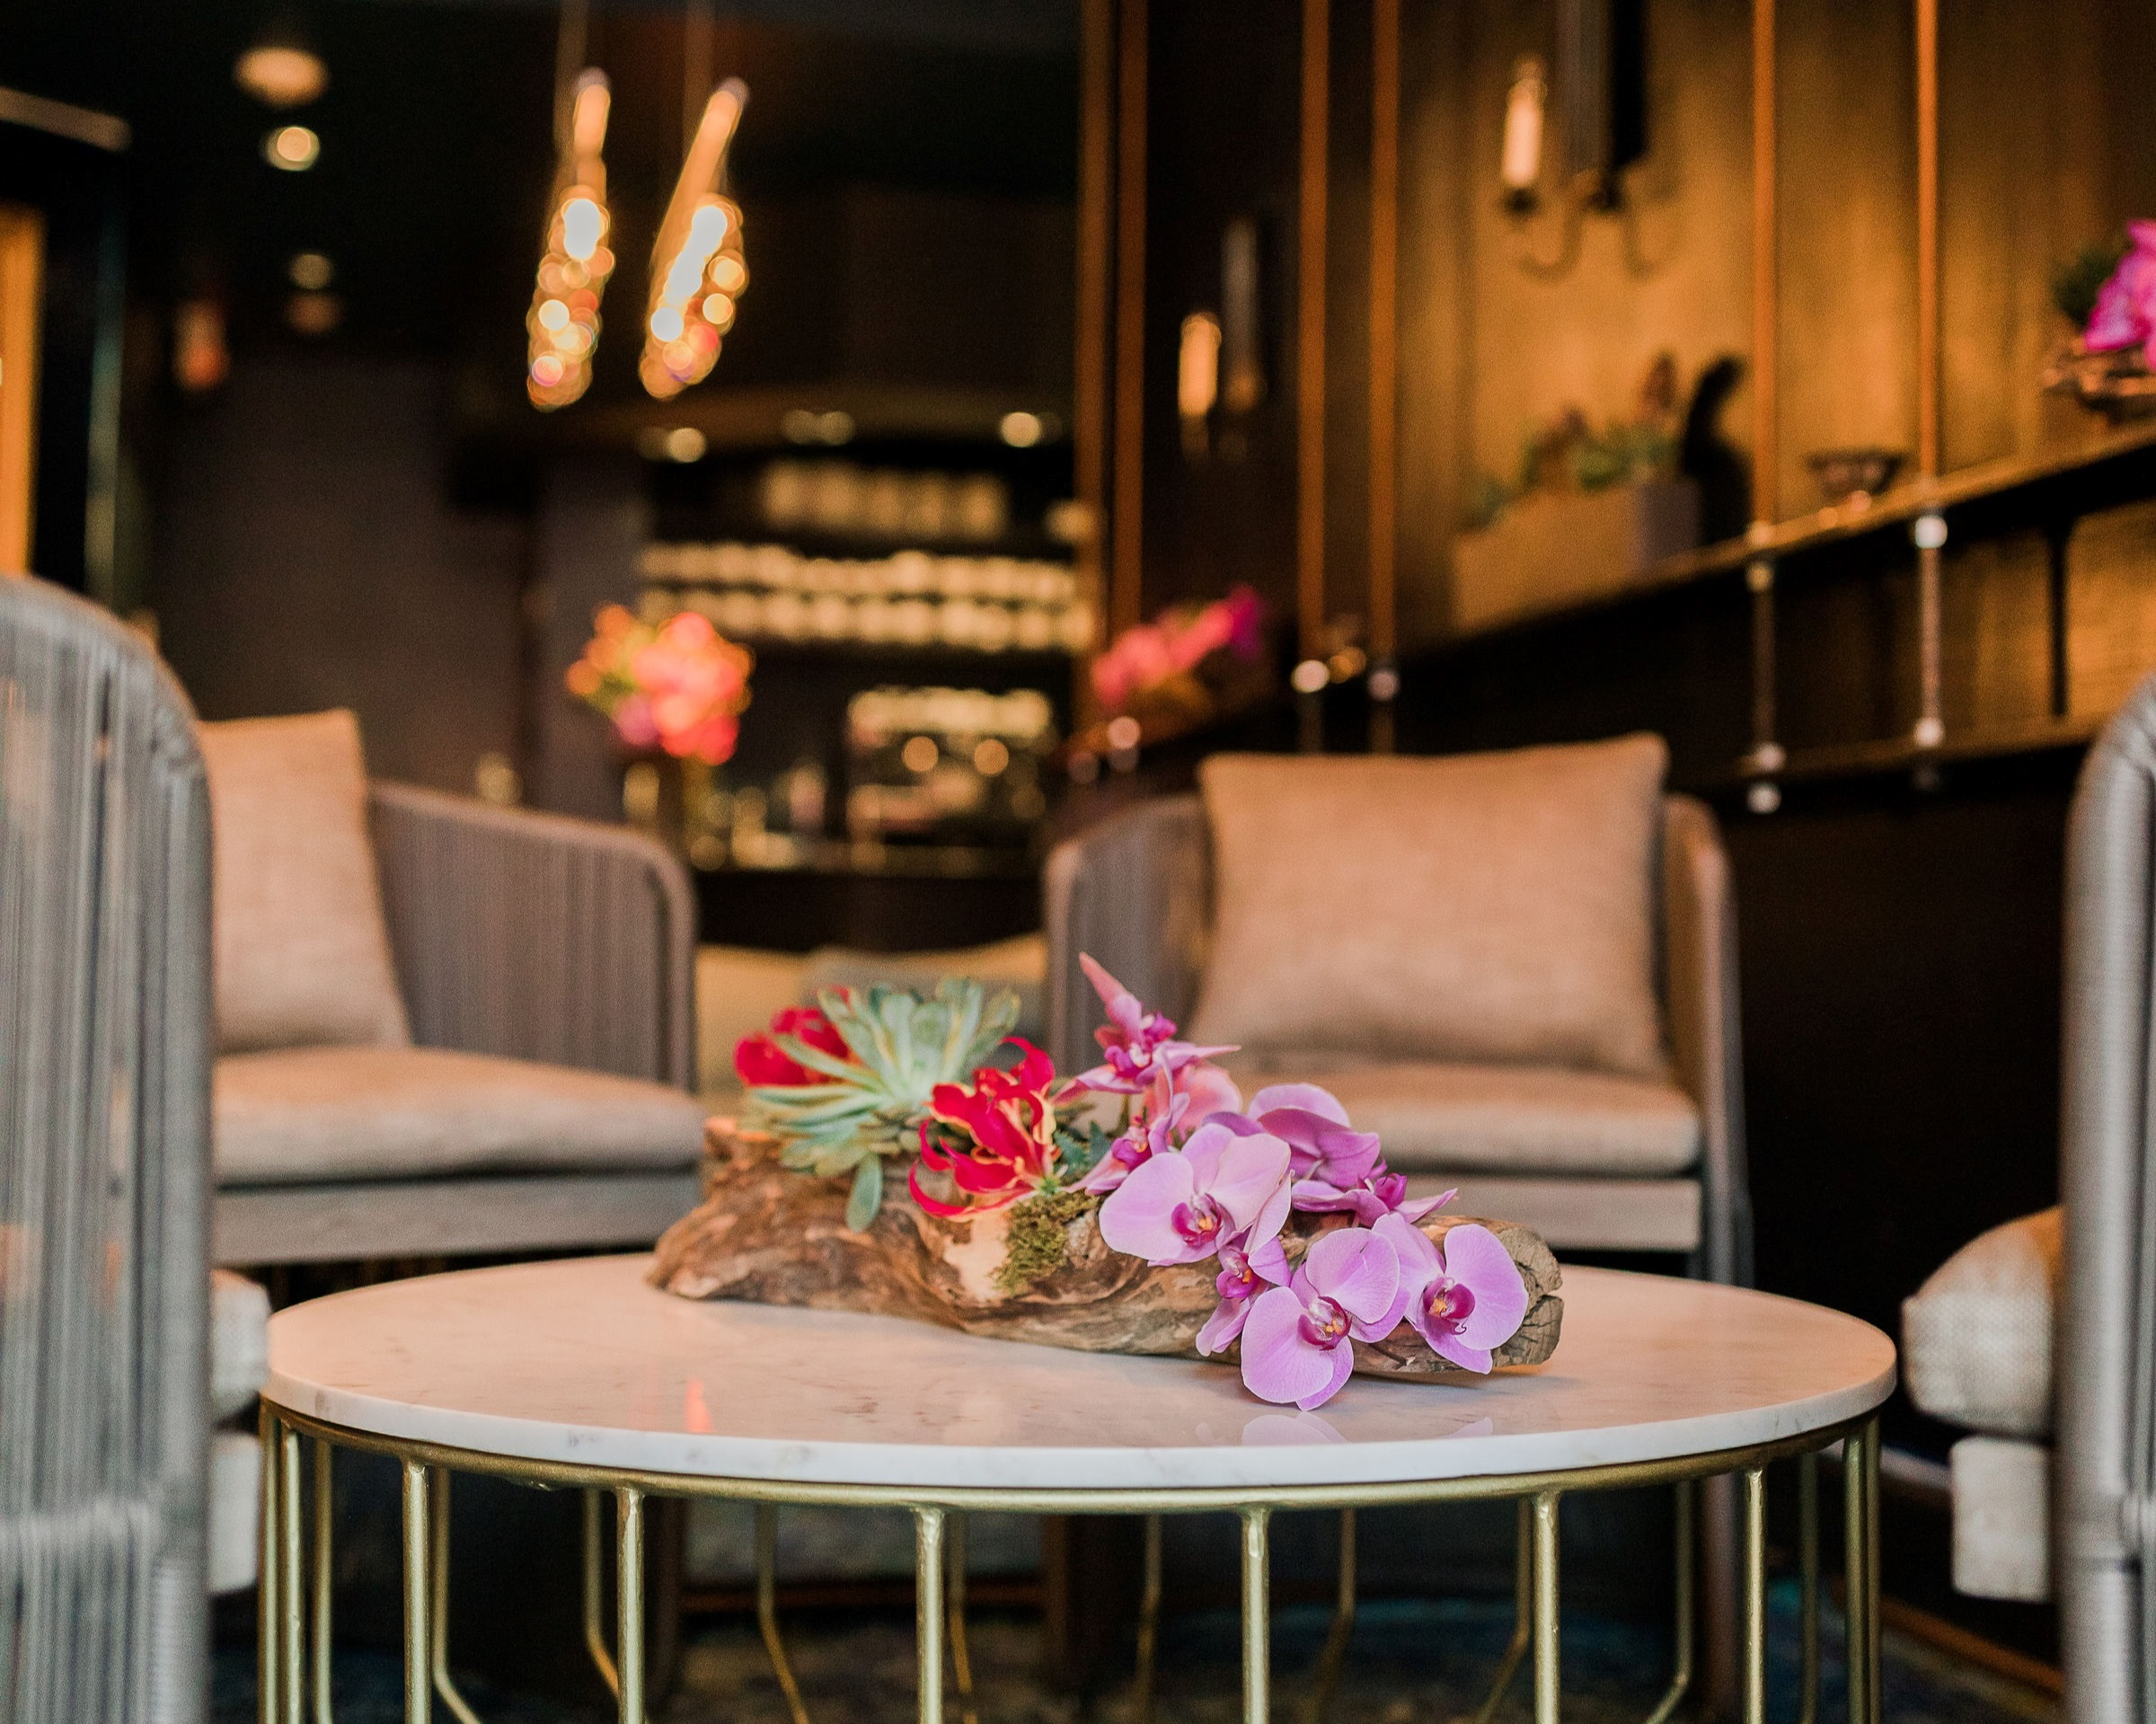 begin your story with us - Are you challenged with finding an intimate private space with character to entertain? Come play and gather your most important people here in our little jewelbox. Introducing Georgetown's premier event destination for private events.